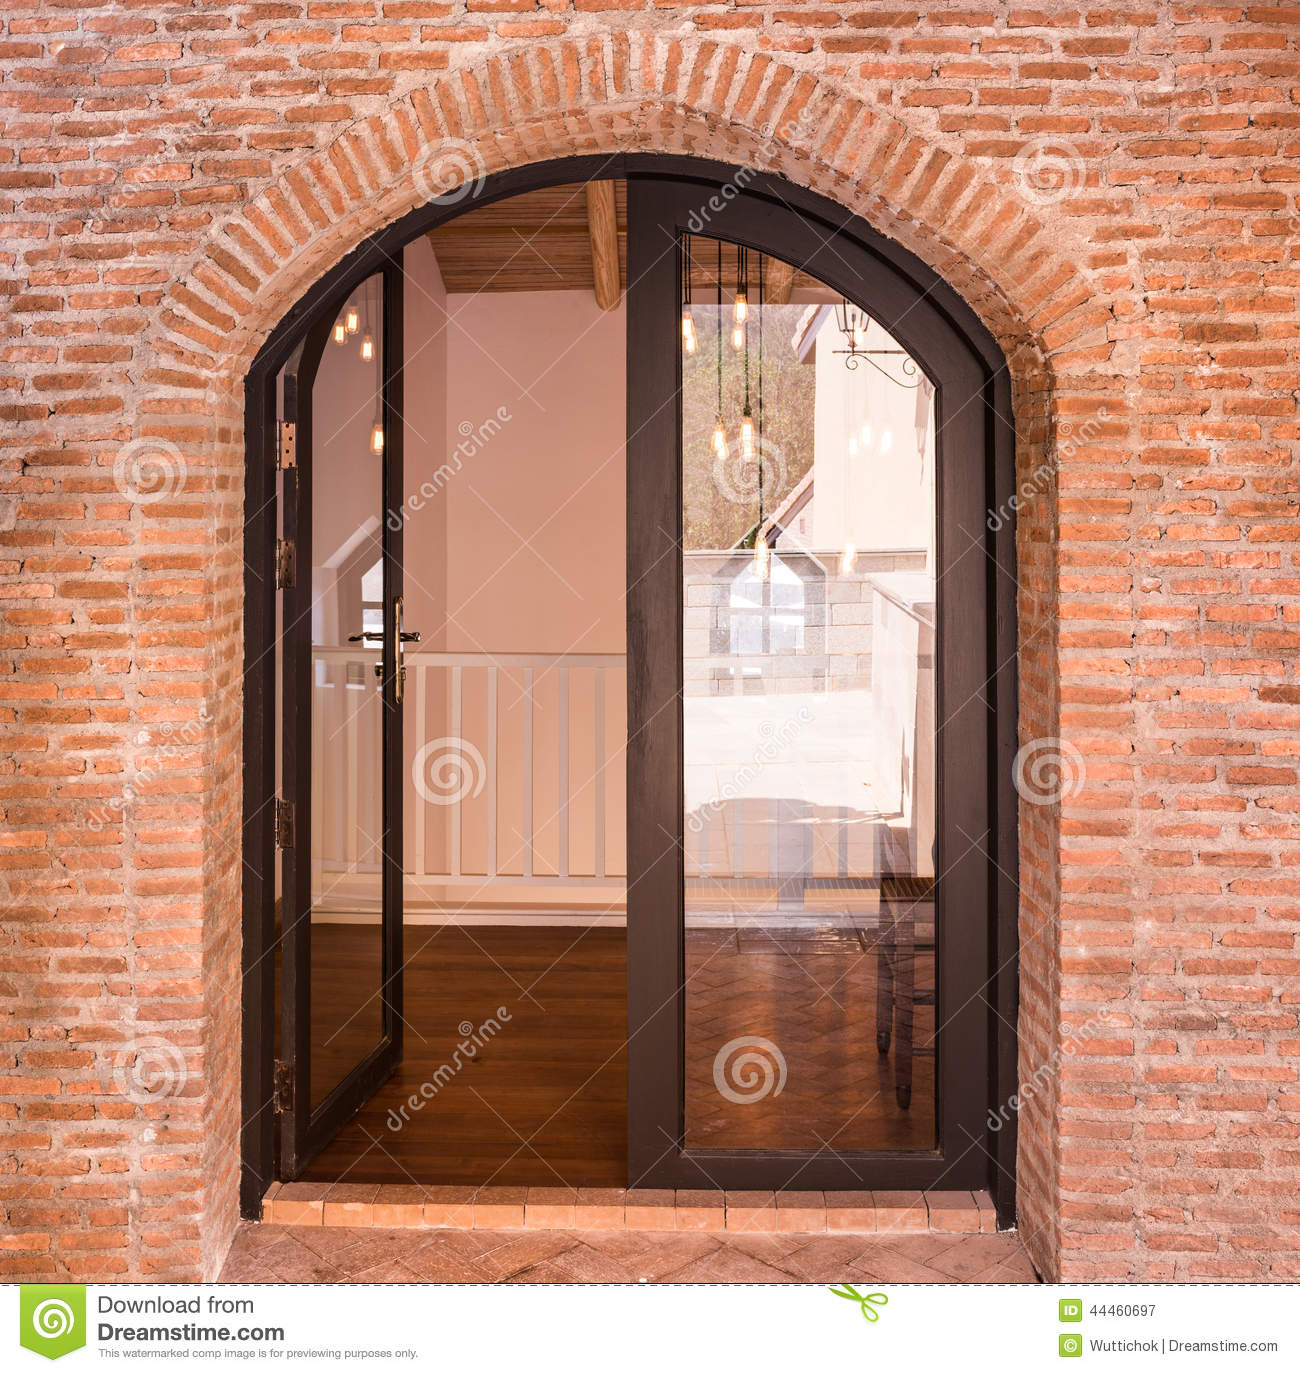 Black Arch Door On Red Brick Wall Stock Photo Image